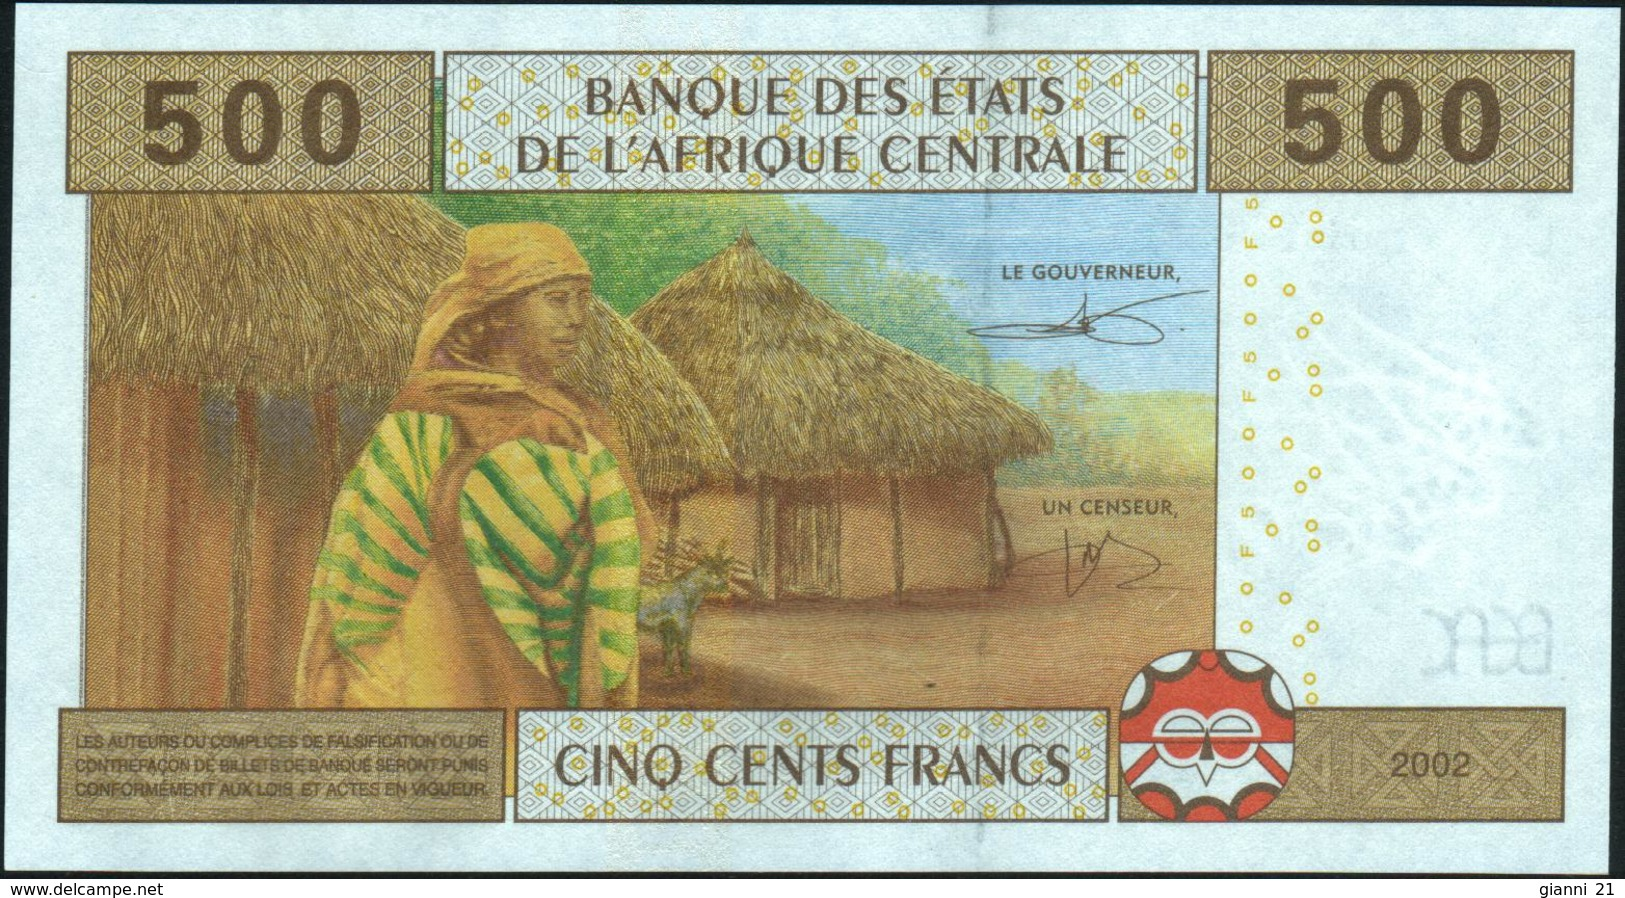 CENTRAL AFRICAN STATES - 500 Francs 2002 {Chad #C} UNC P.606 Cc - Chad